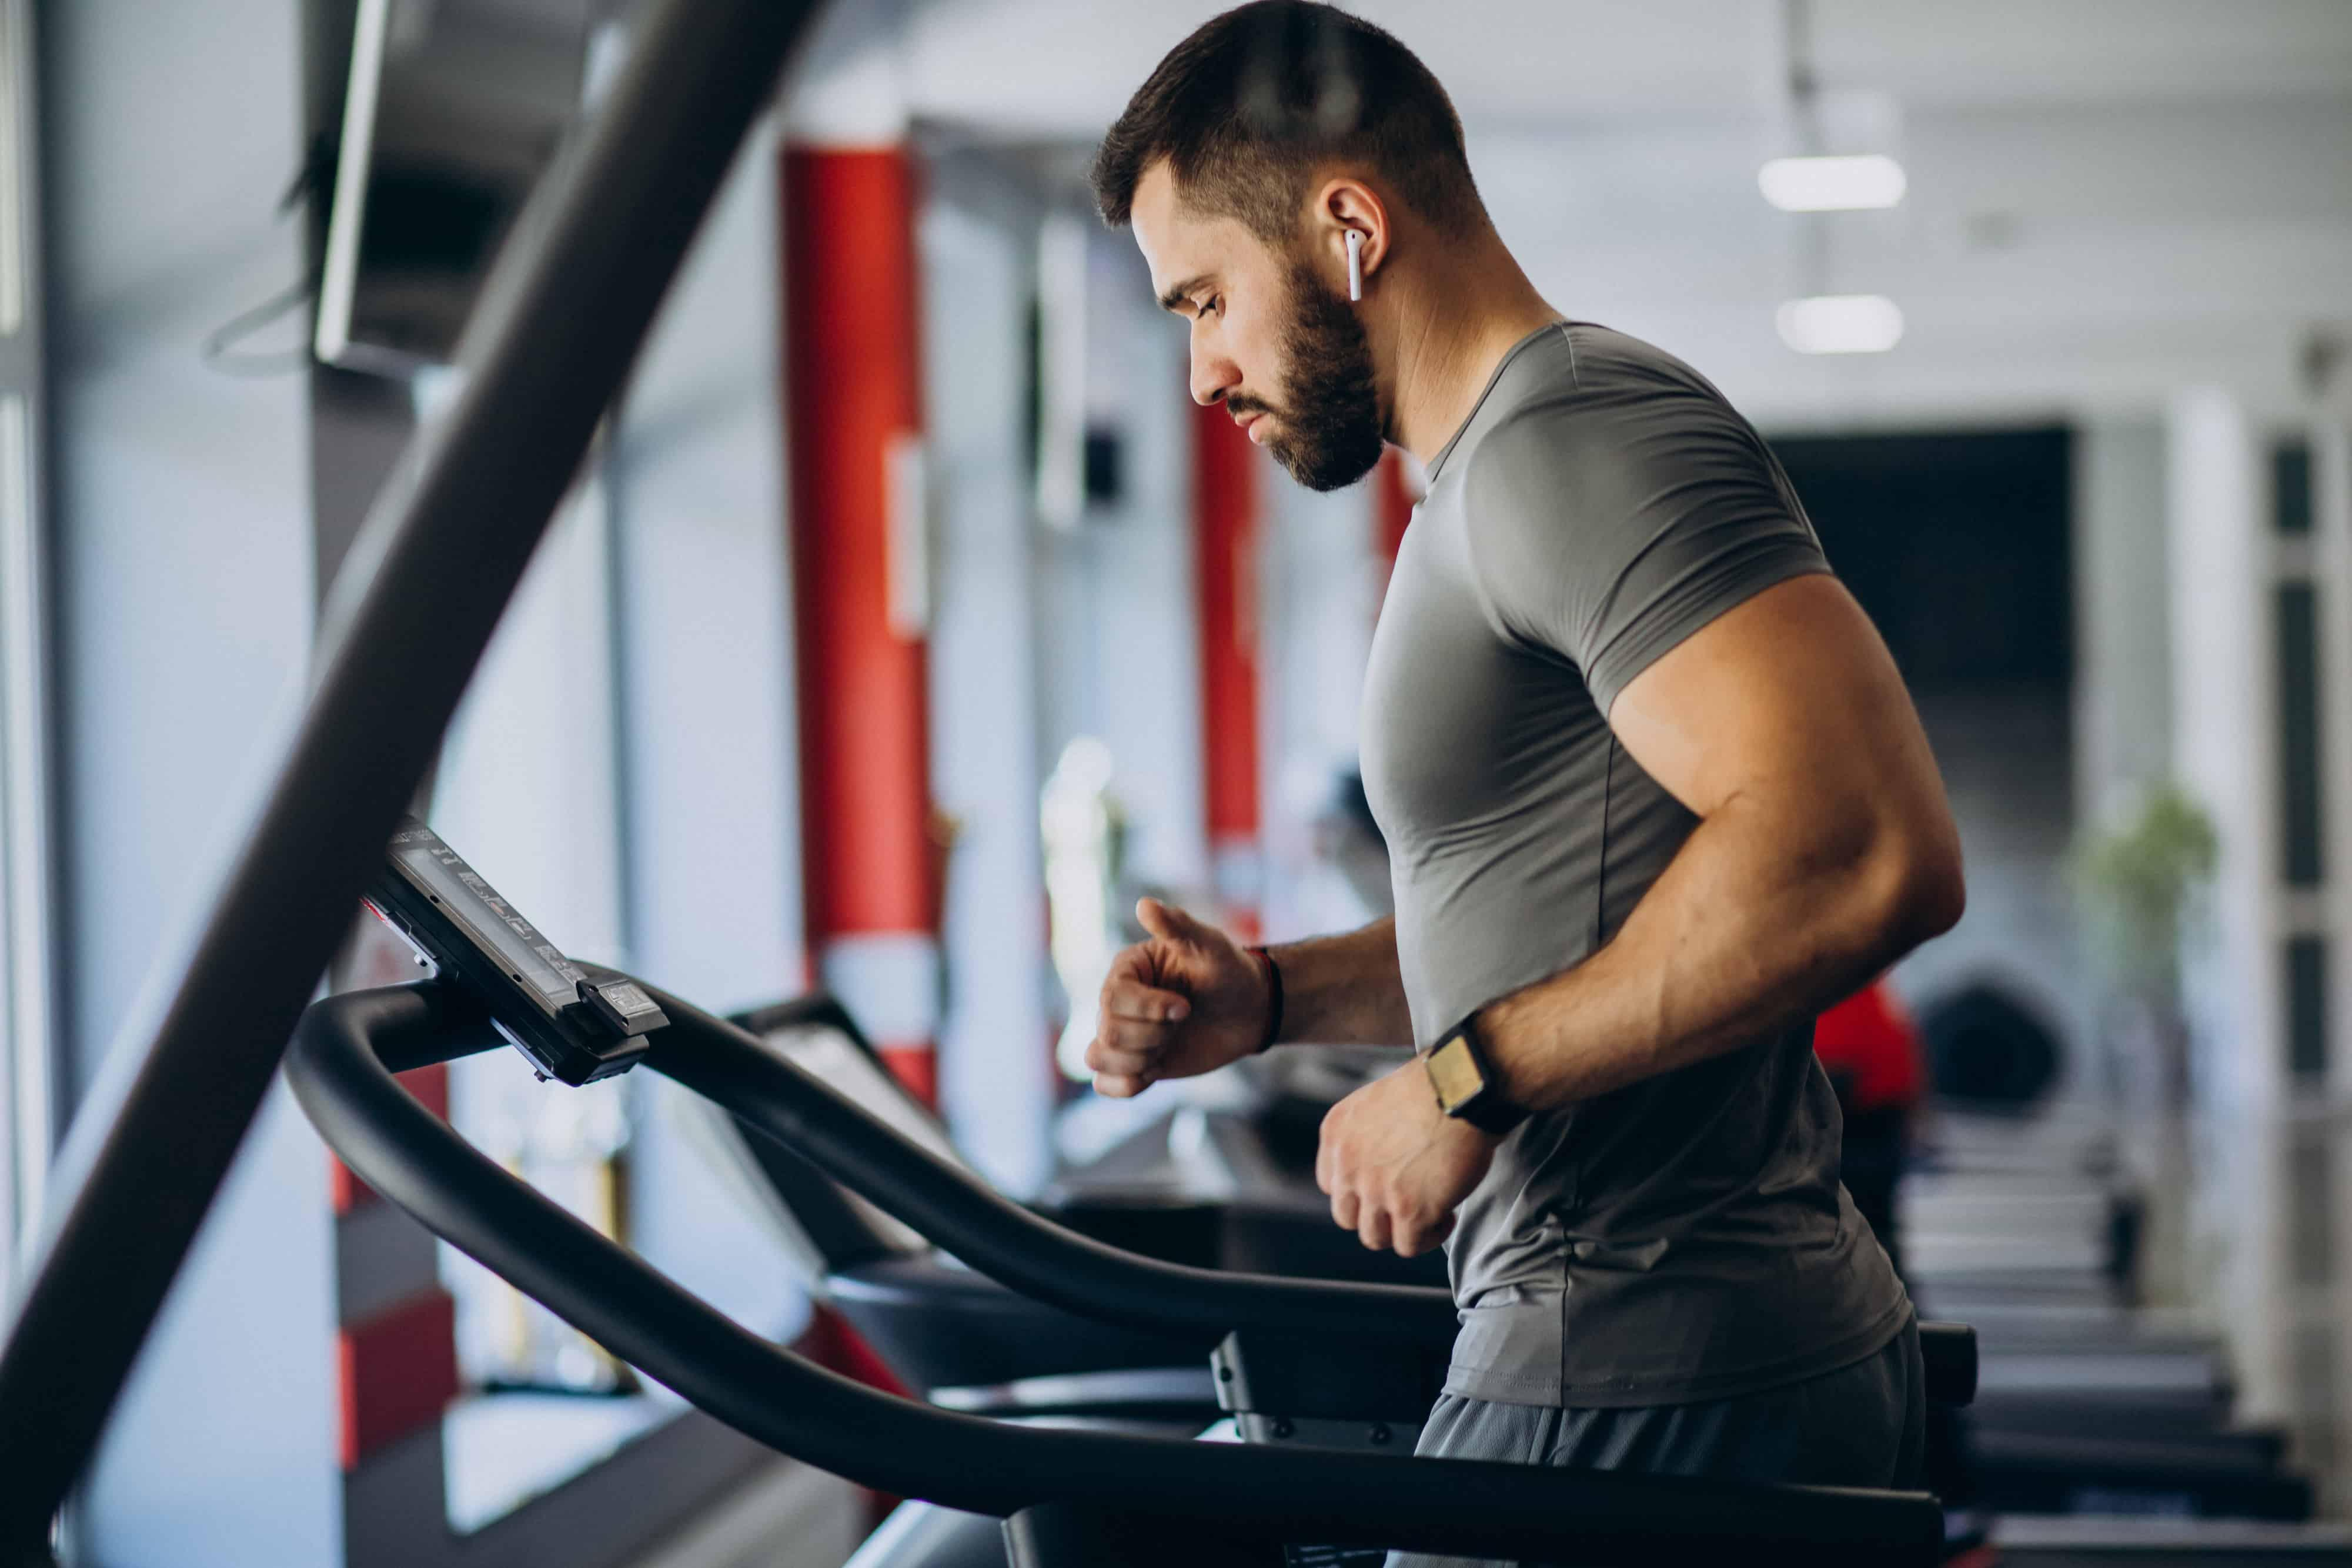 Benefits of going to the gym and doing physical activity